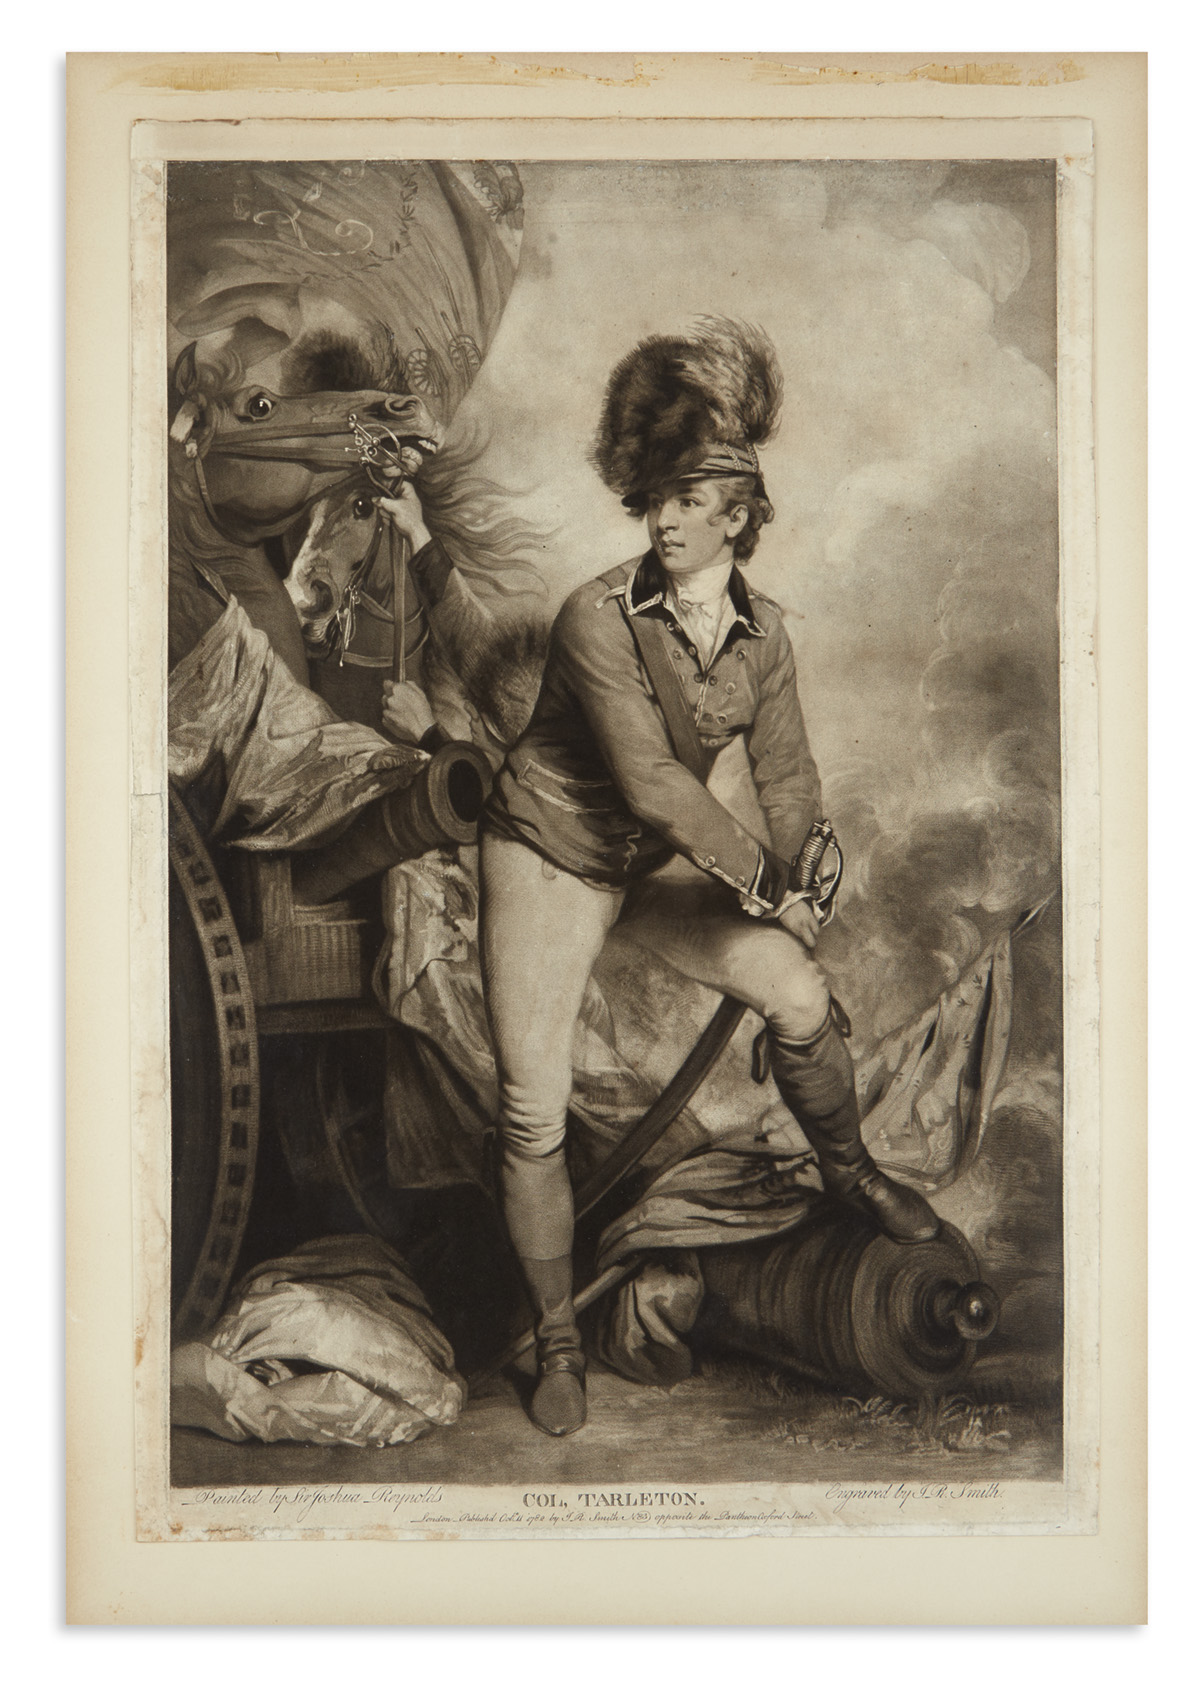 (AMERICAN-REVOLUTION--1782)-Smith-JR-engraver-Engraving-of-B